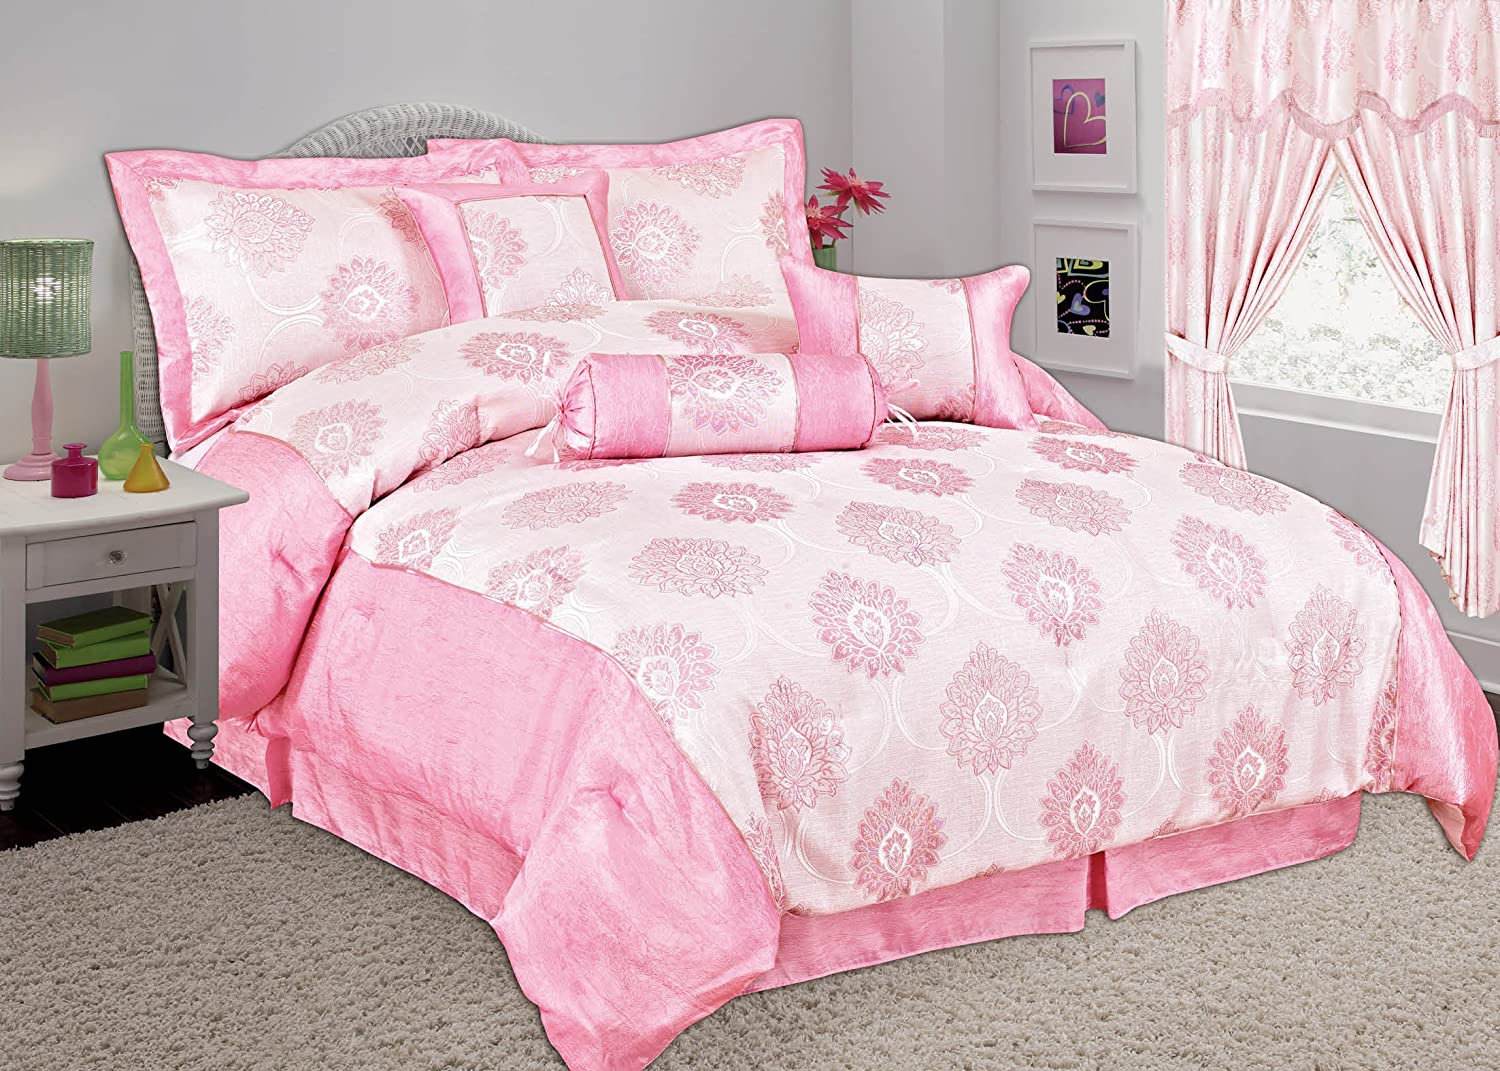 Valance Sheet Pillow Cases Double, Pink Cushion and Neck Roll Online Bedding Store 7pcs MALTA Comforter Set.Bedspread